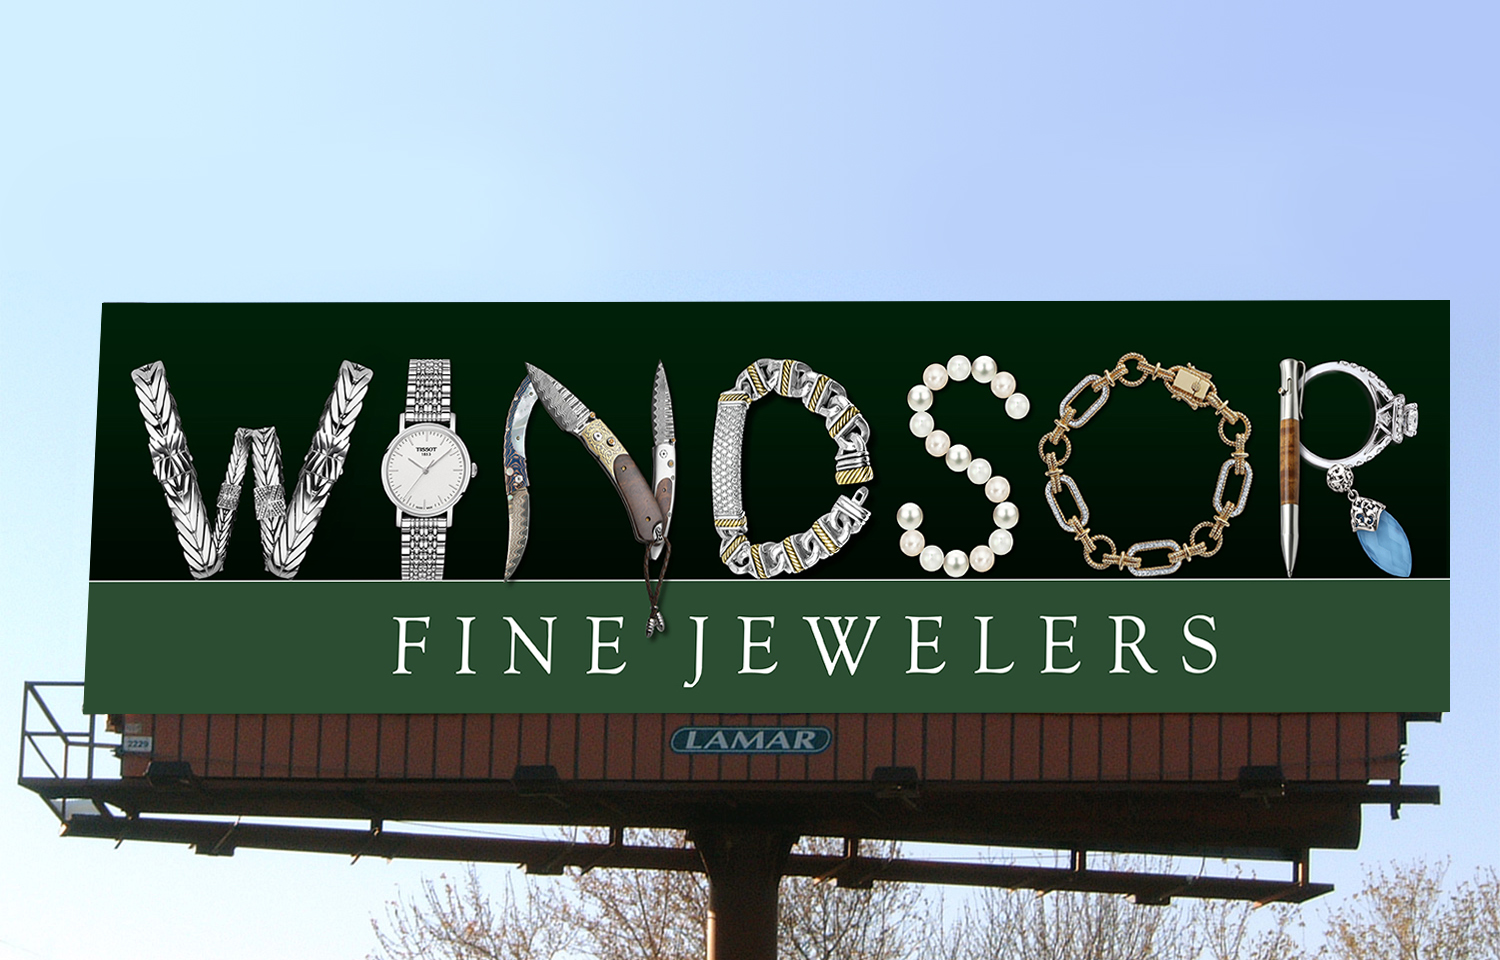 Windsor Fine Jewelers Board